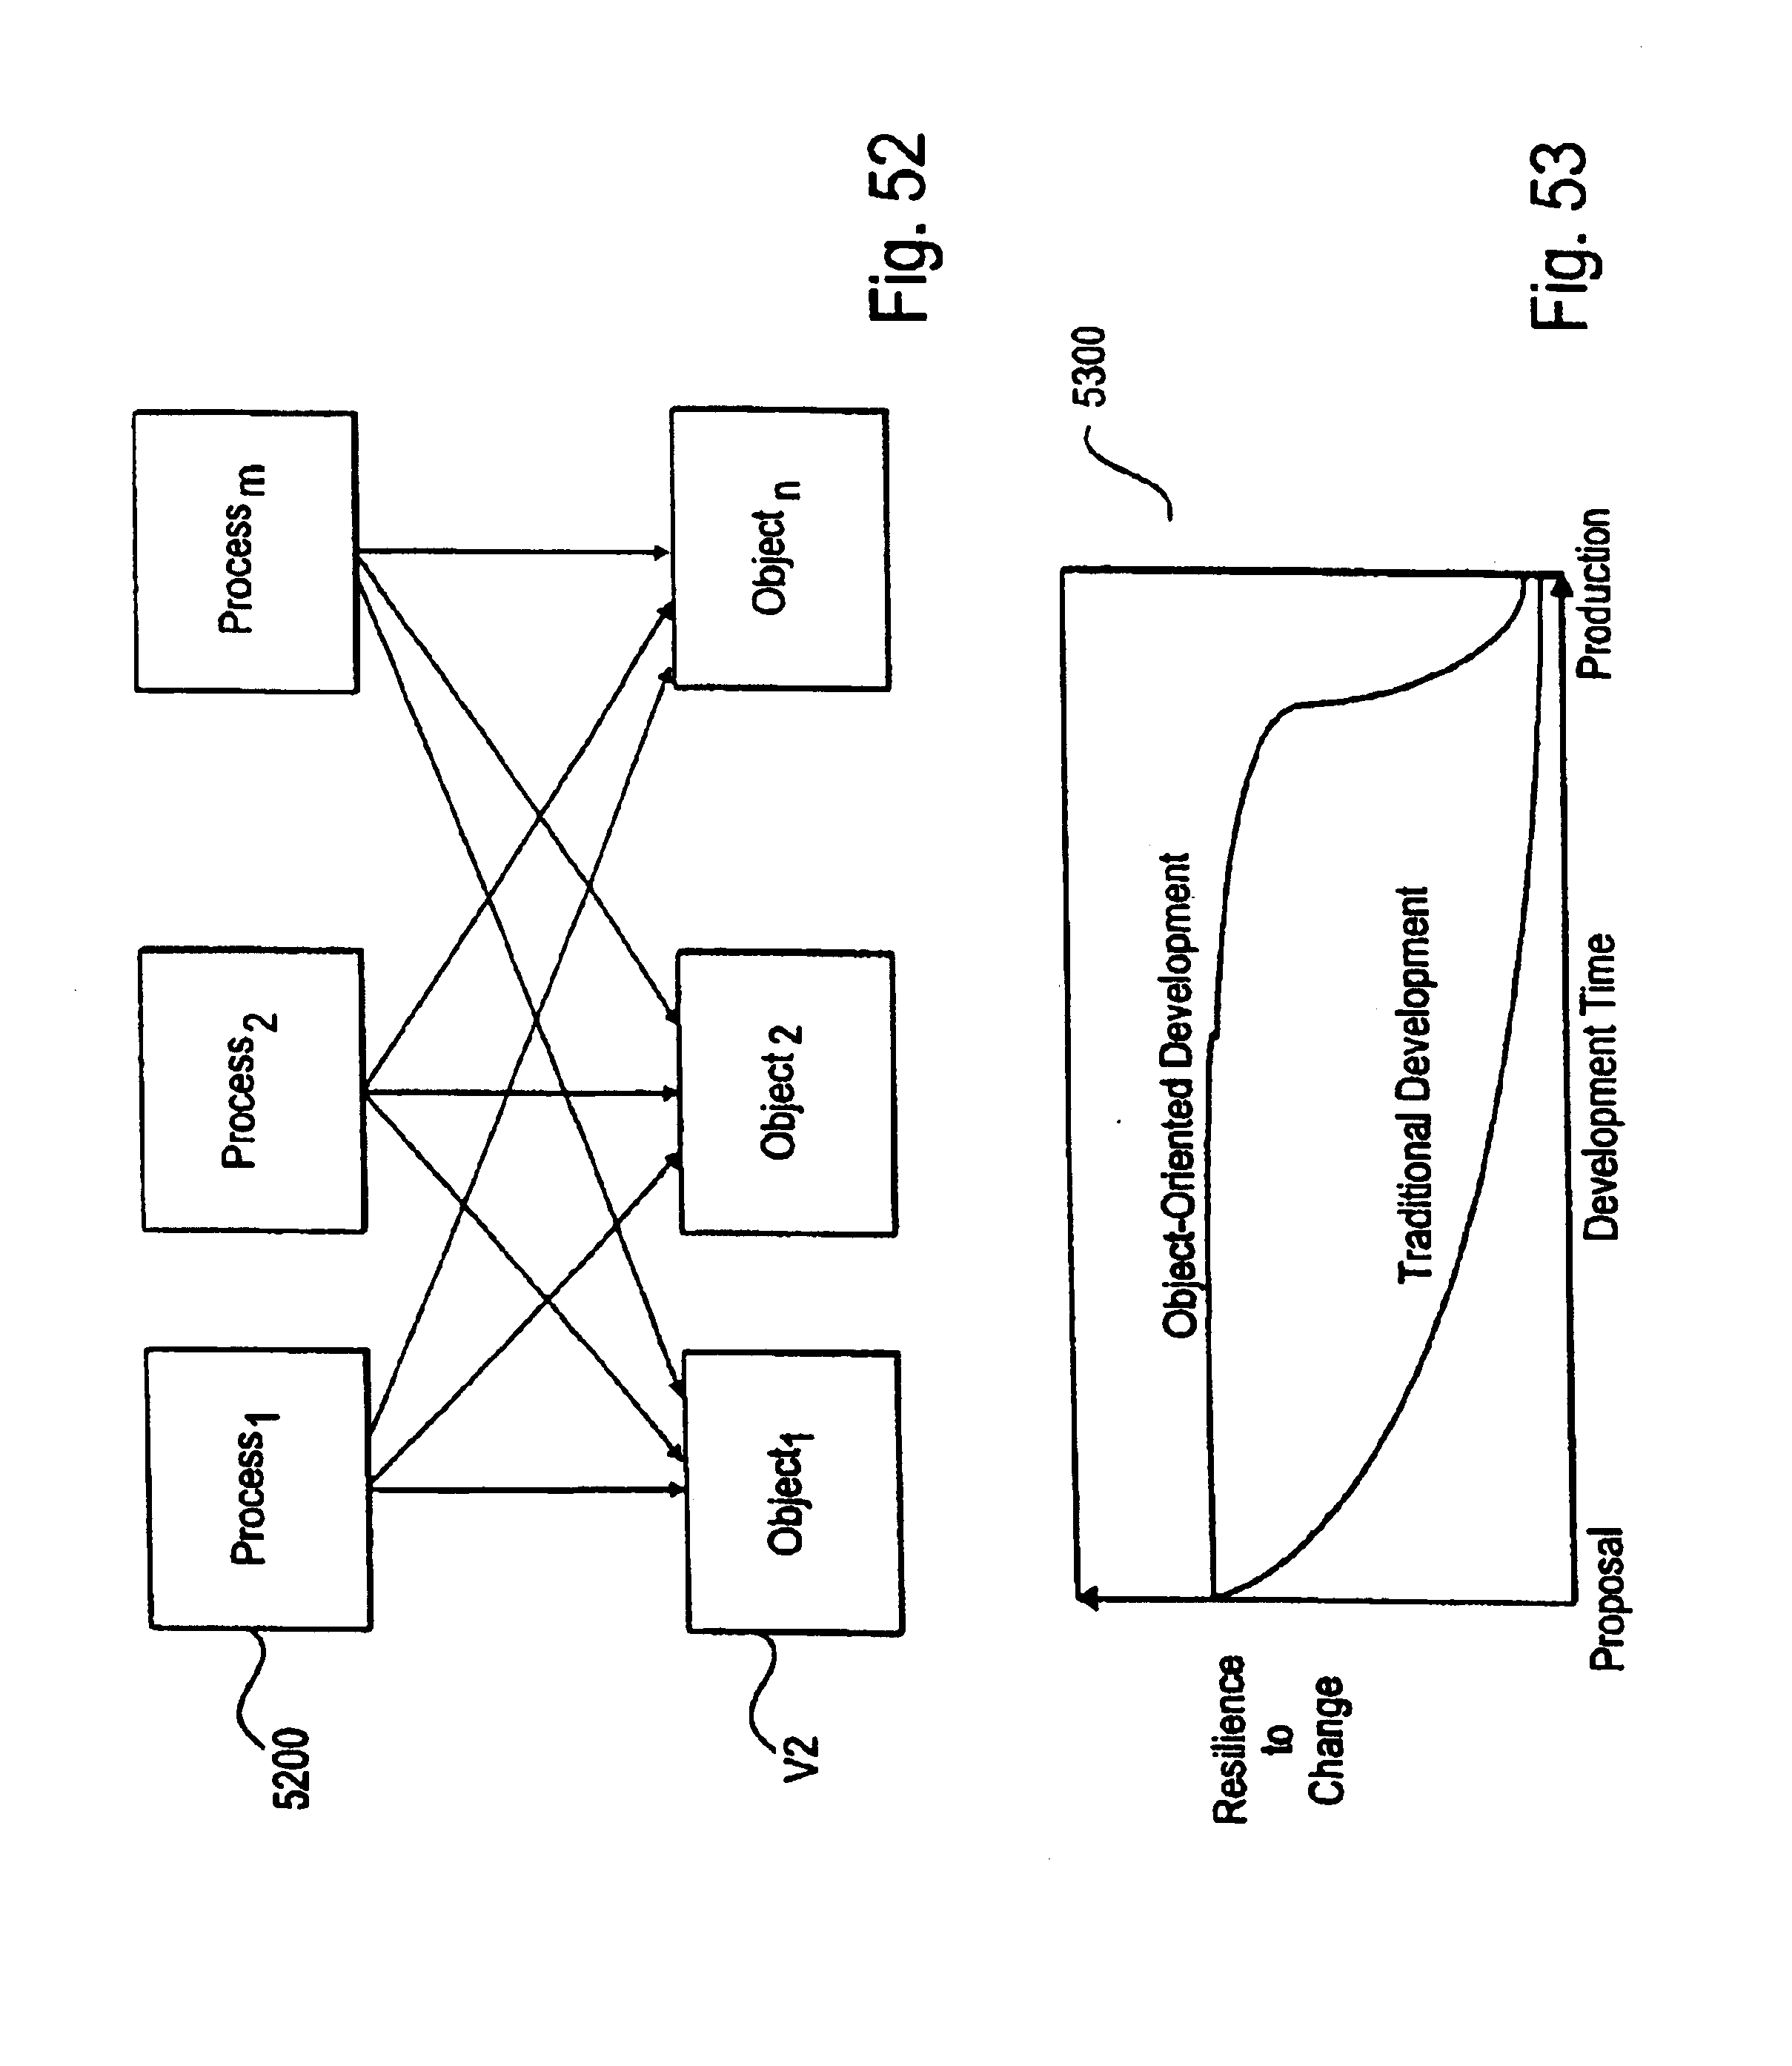 Patent Us 6742015 B1 Circuits And Pins In Addition Dtmf Decoder Circuit Moreover Timing Images